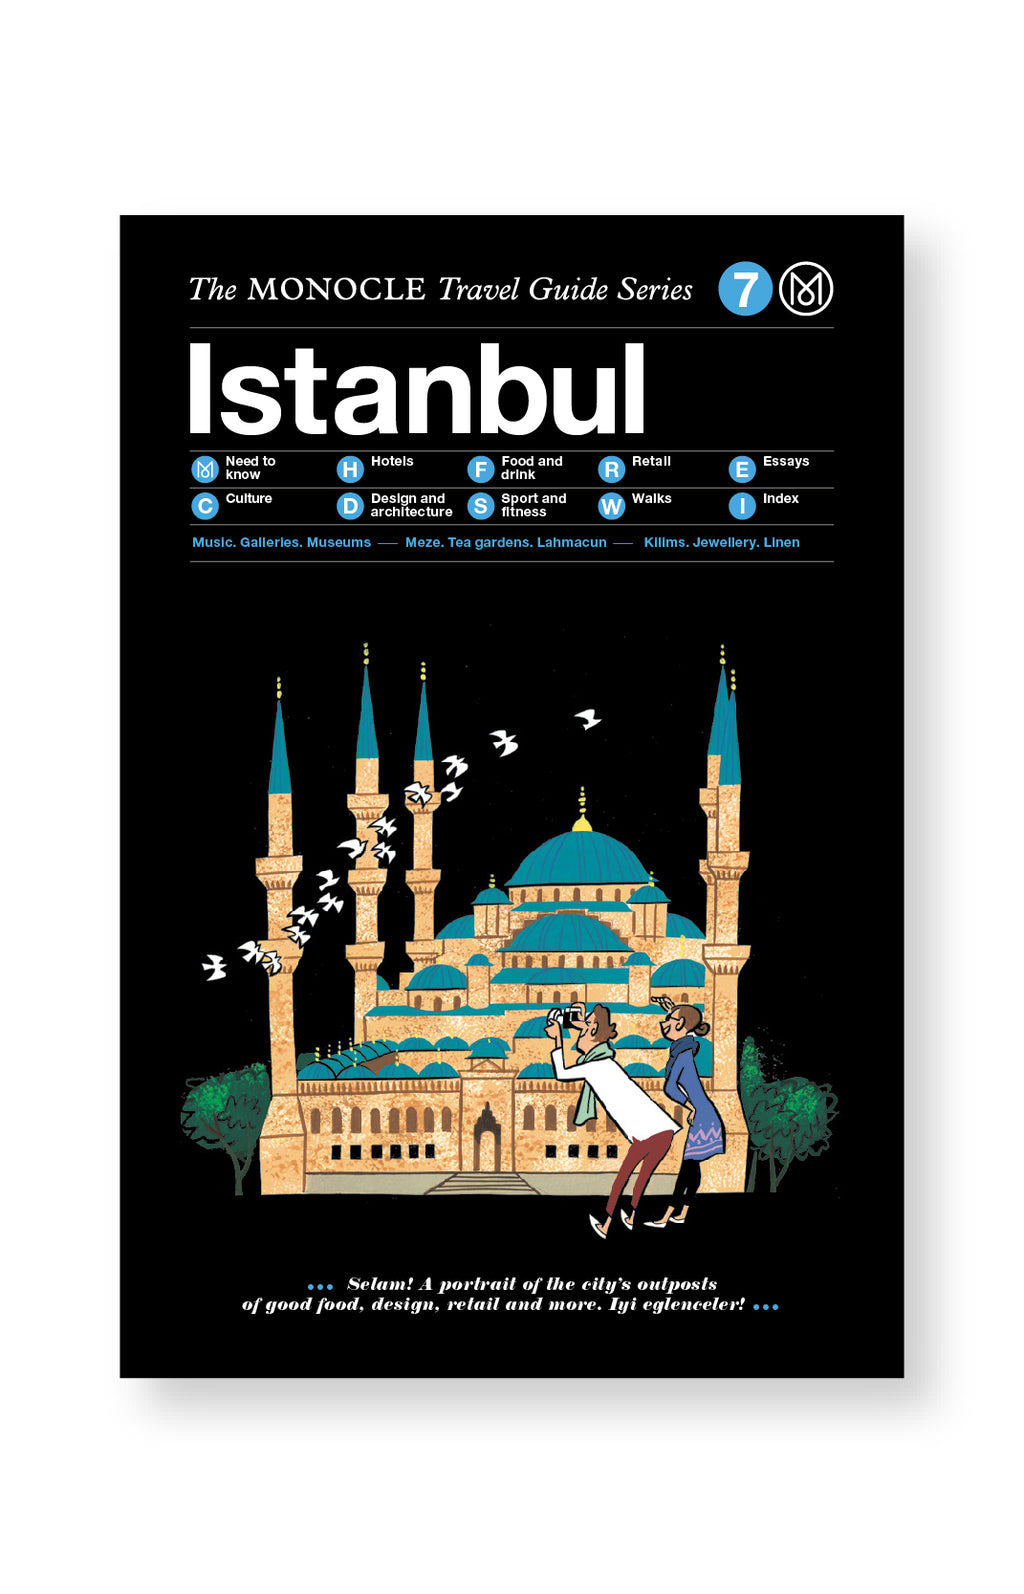 Istanbul - The Monocle Travel Guide Series 7